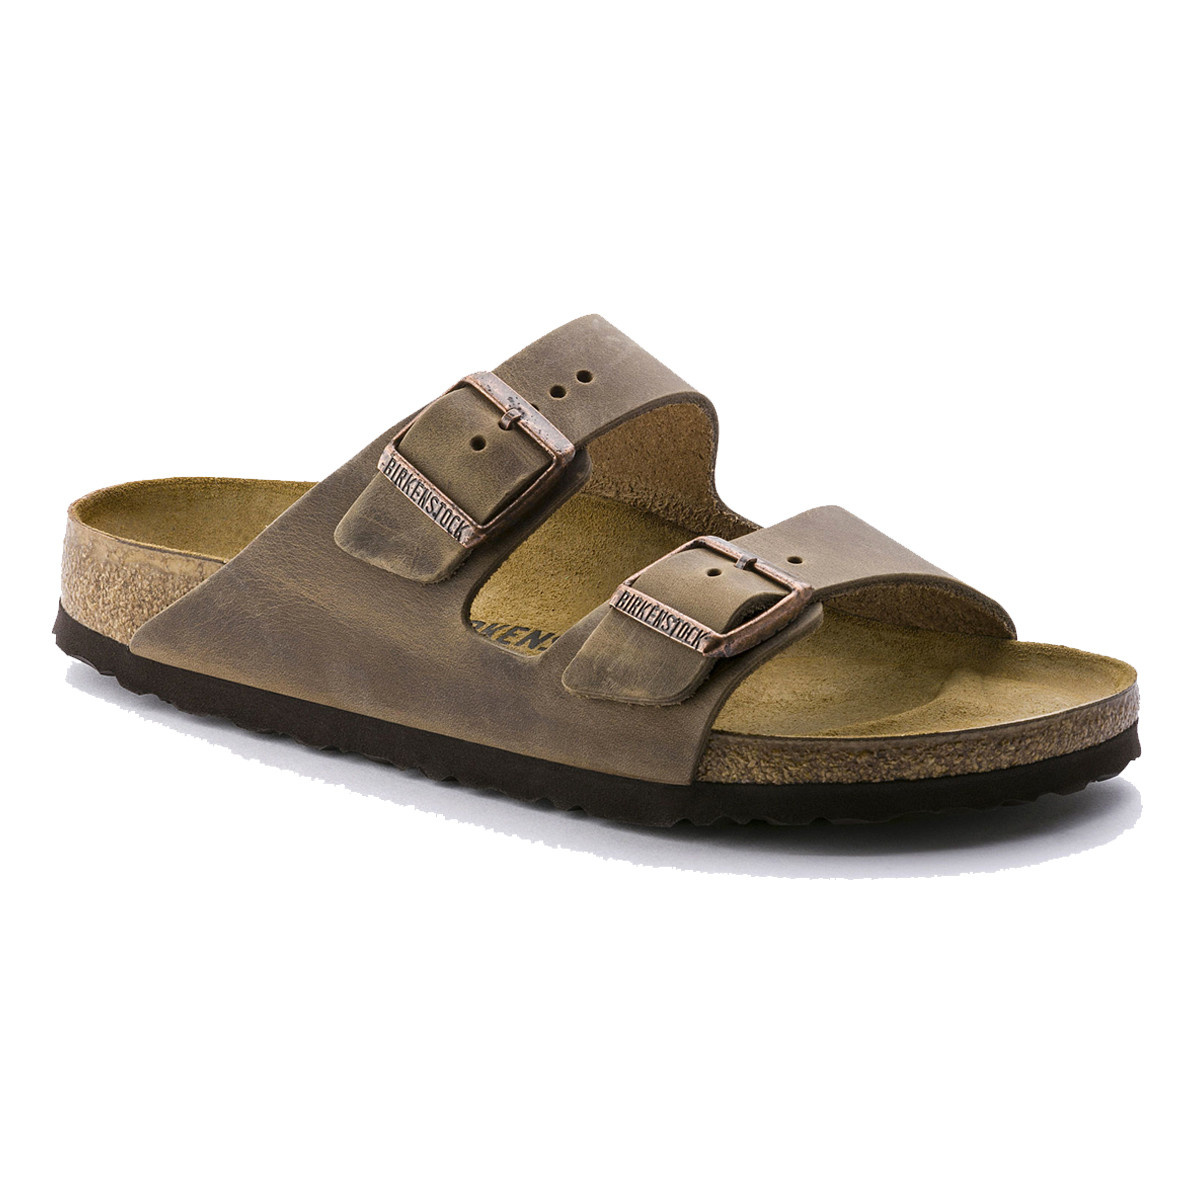 Birkenstock Birkenstock Women's Arizona Tobacco Oiled Regular fit